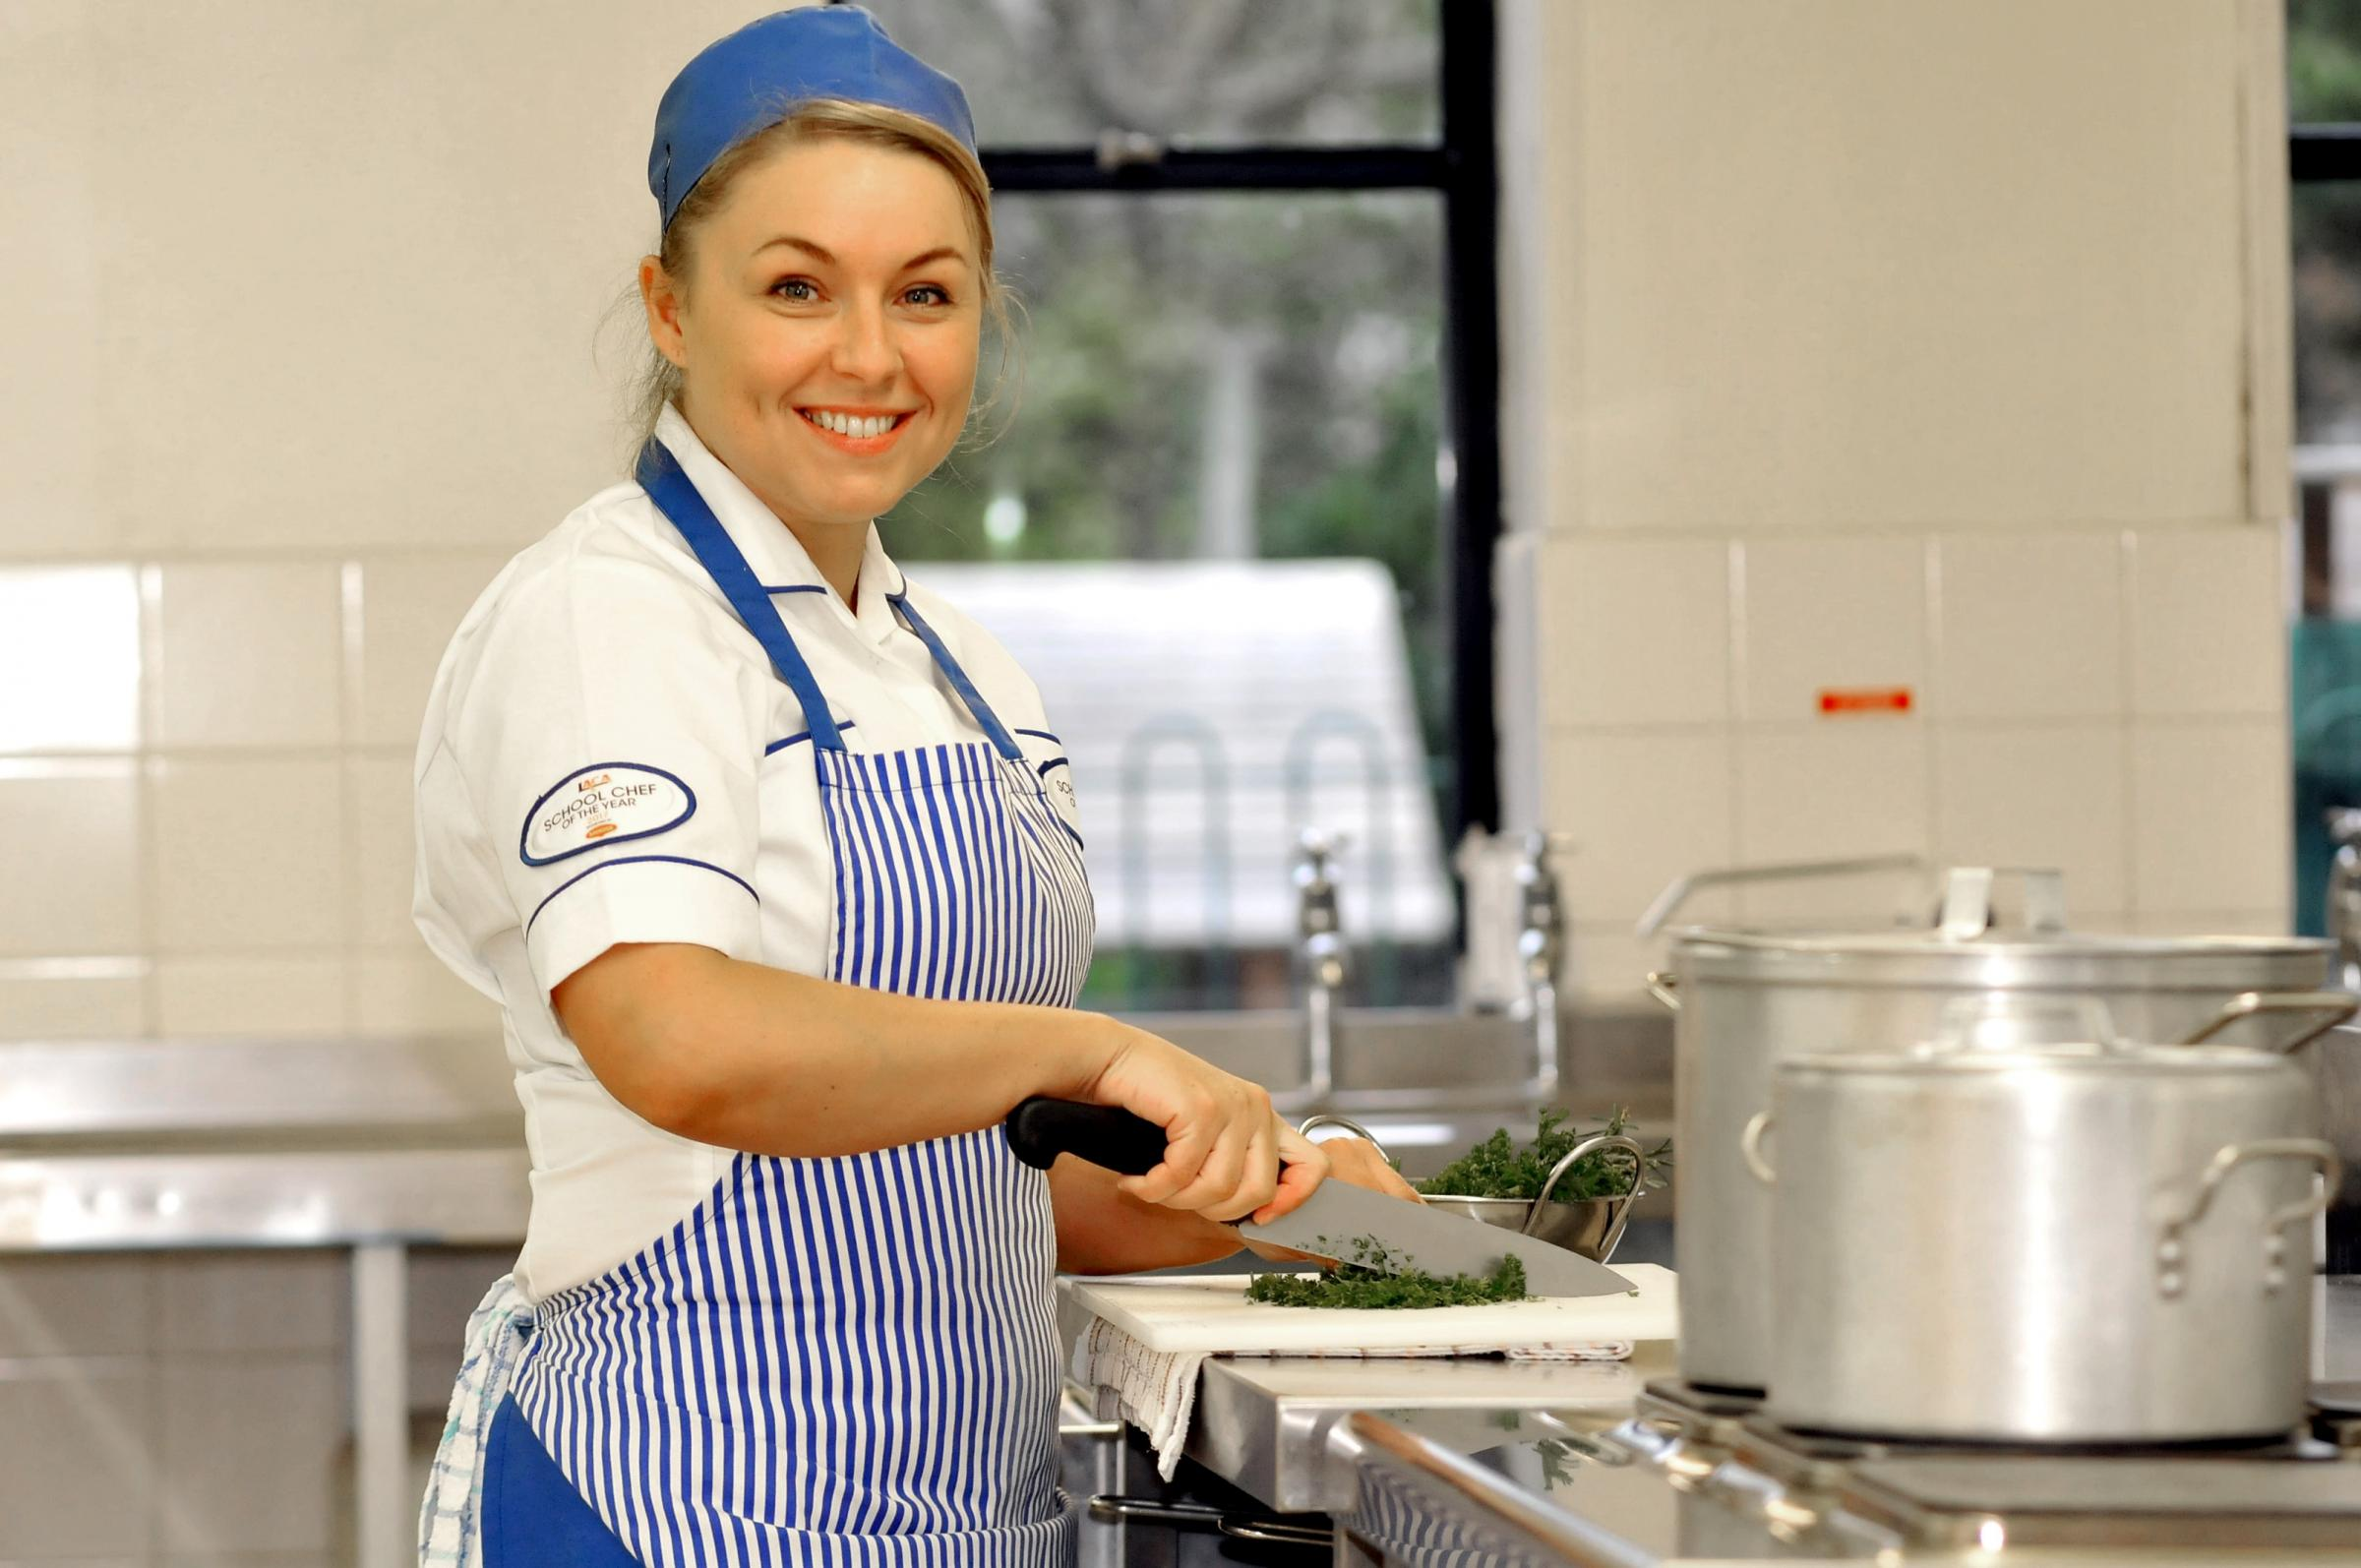 School cook hoping to win chef competition